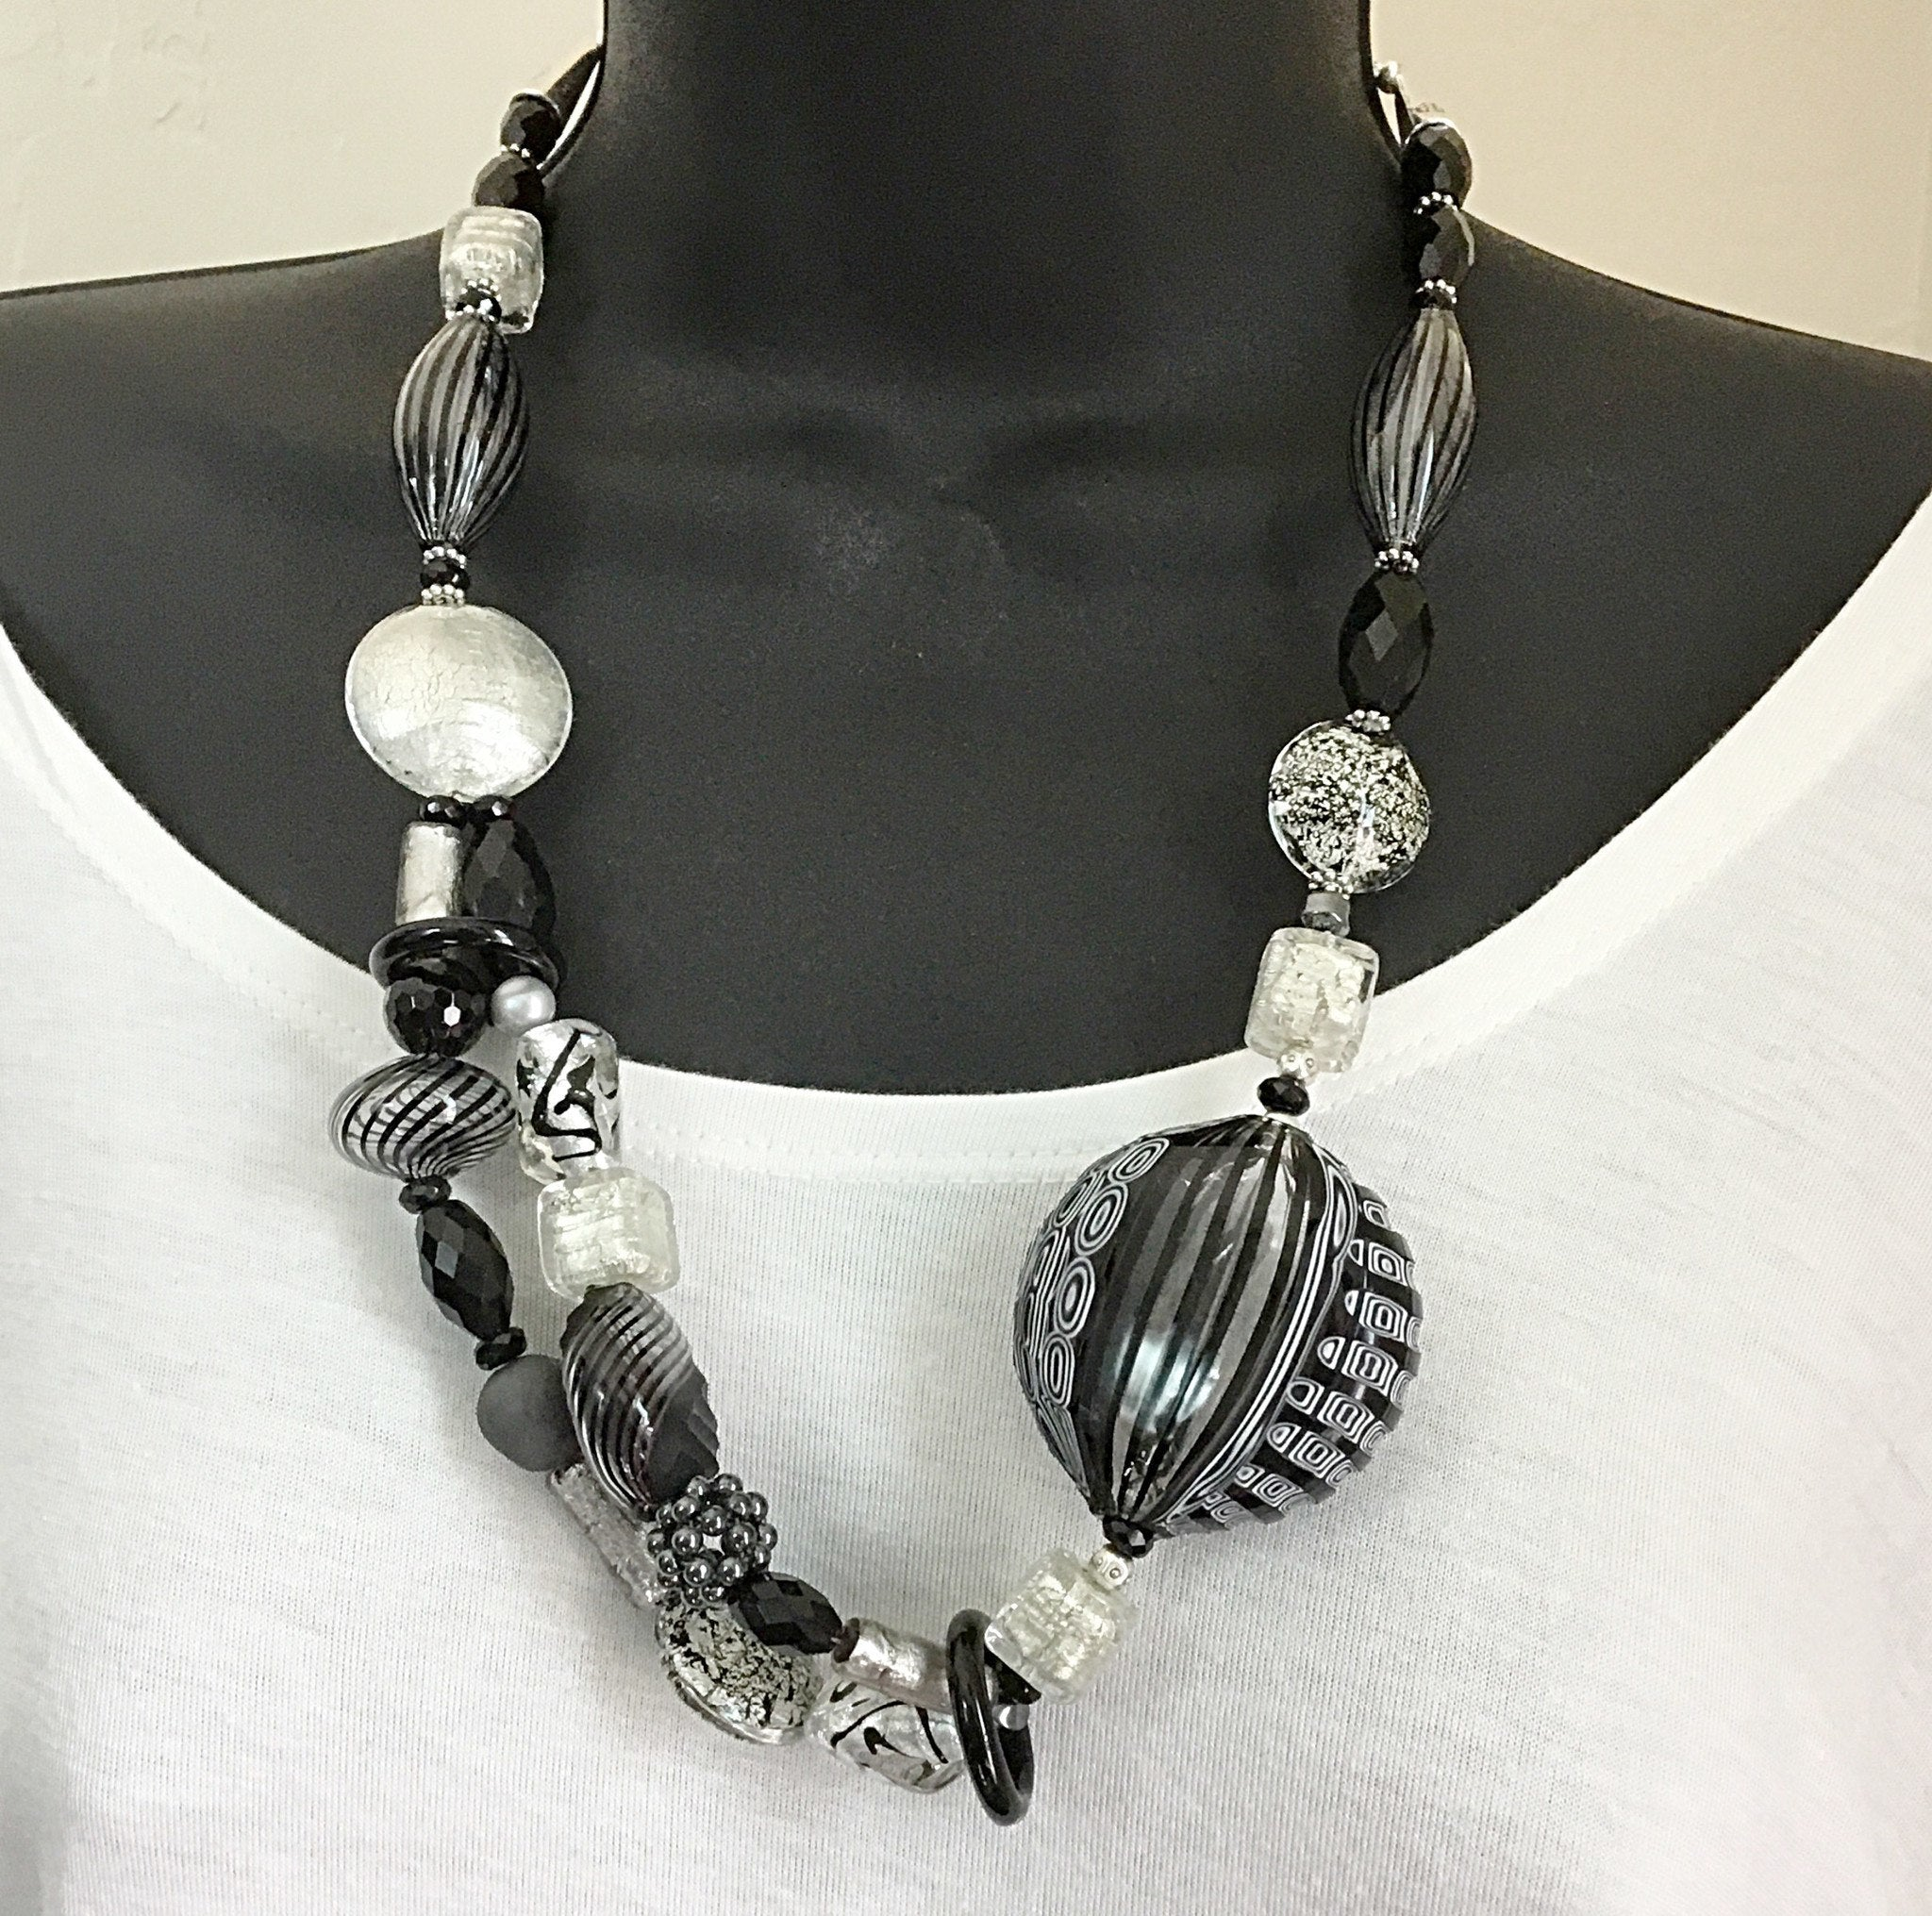 Murano Glass Necklace Black and White Stripes - Real Chic Boutique  - 4